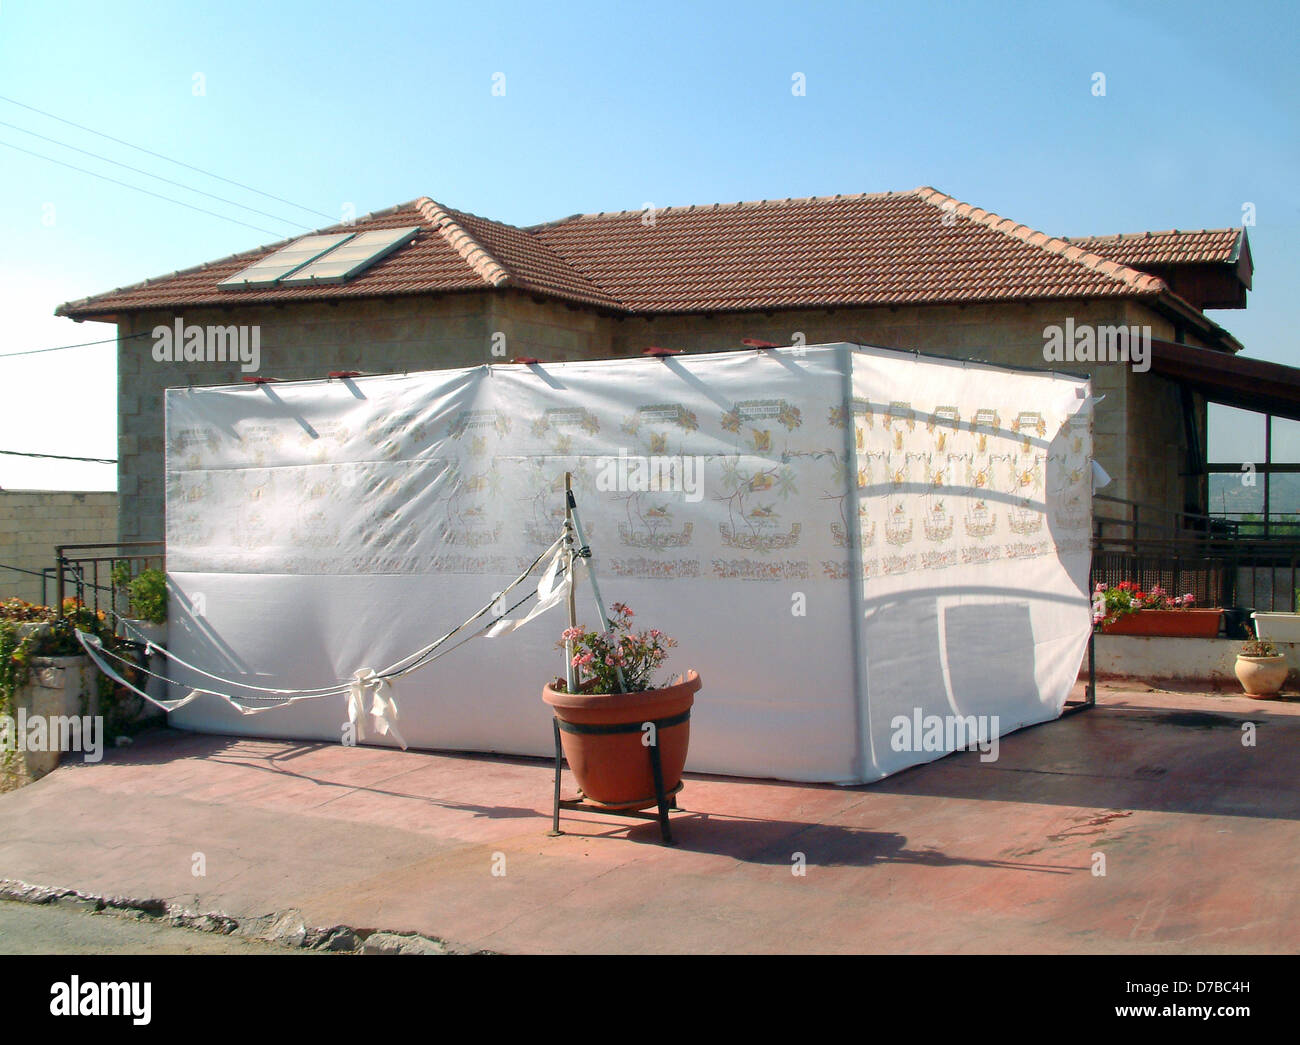 Sukkah in Mevaseret Zion - Stock Image